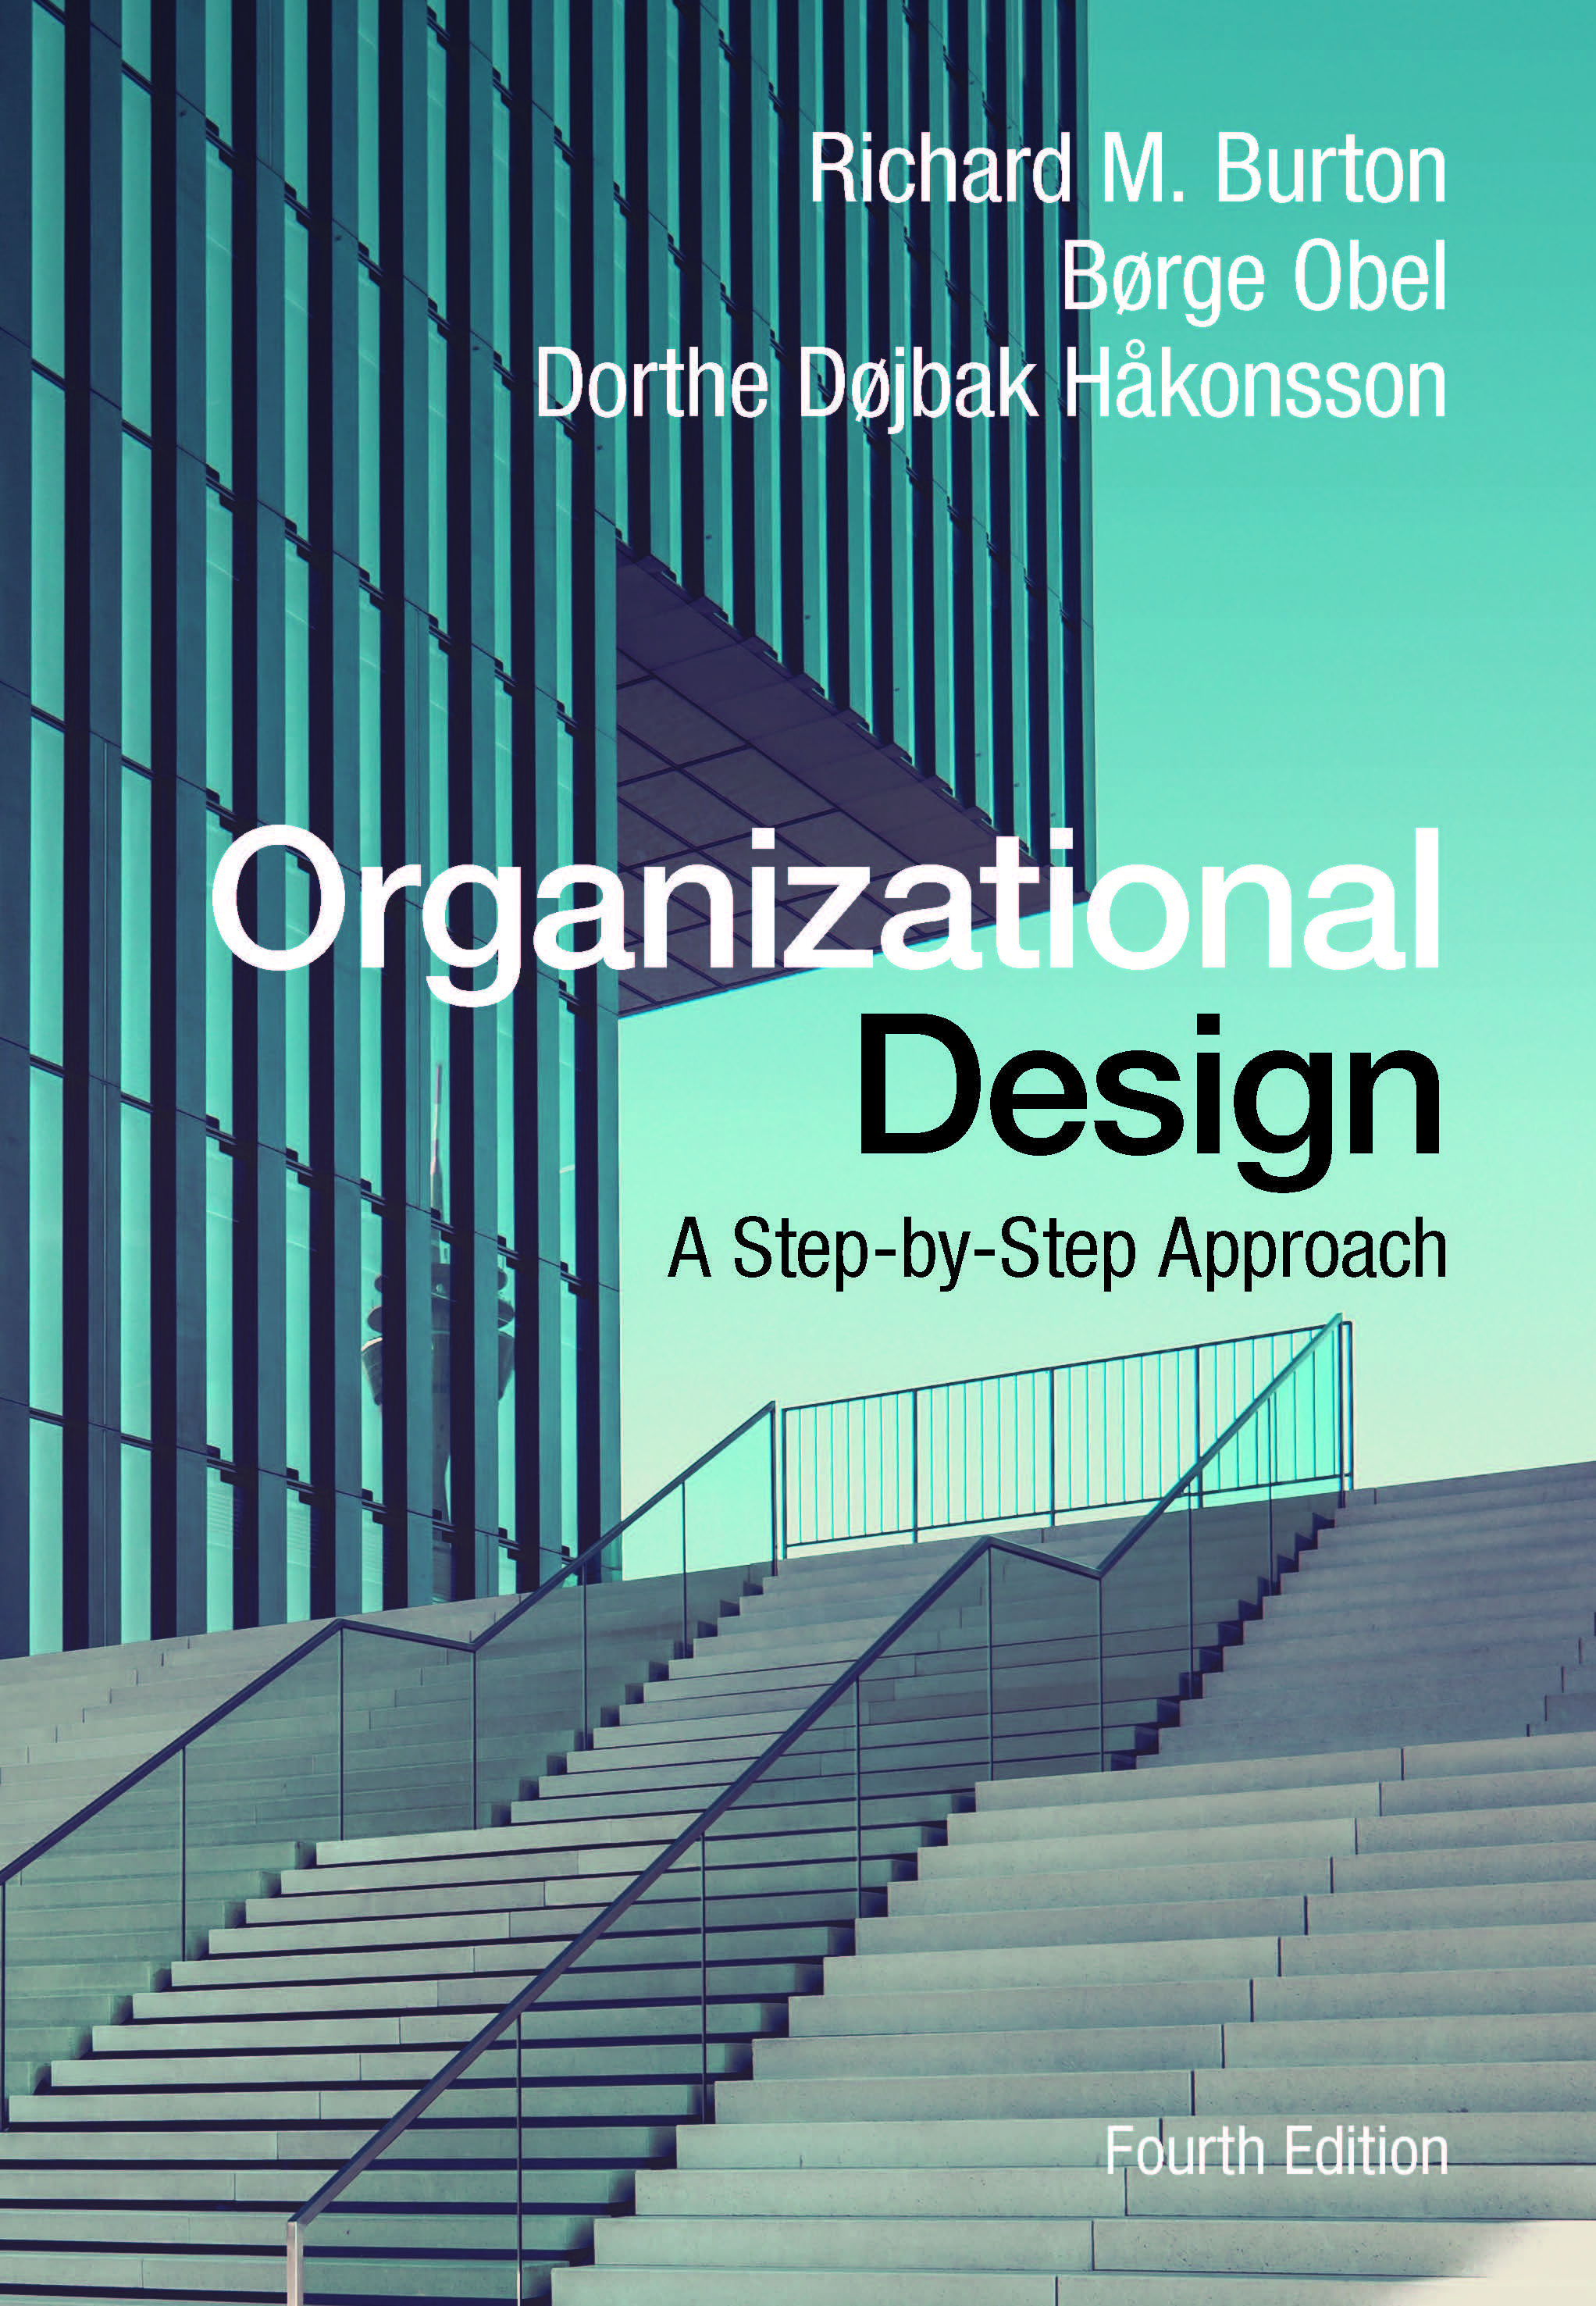 Organizational Design Course - Virtual ( May 5, 2021 to June 2, 2021)